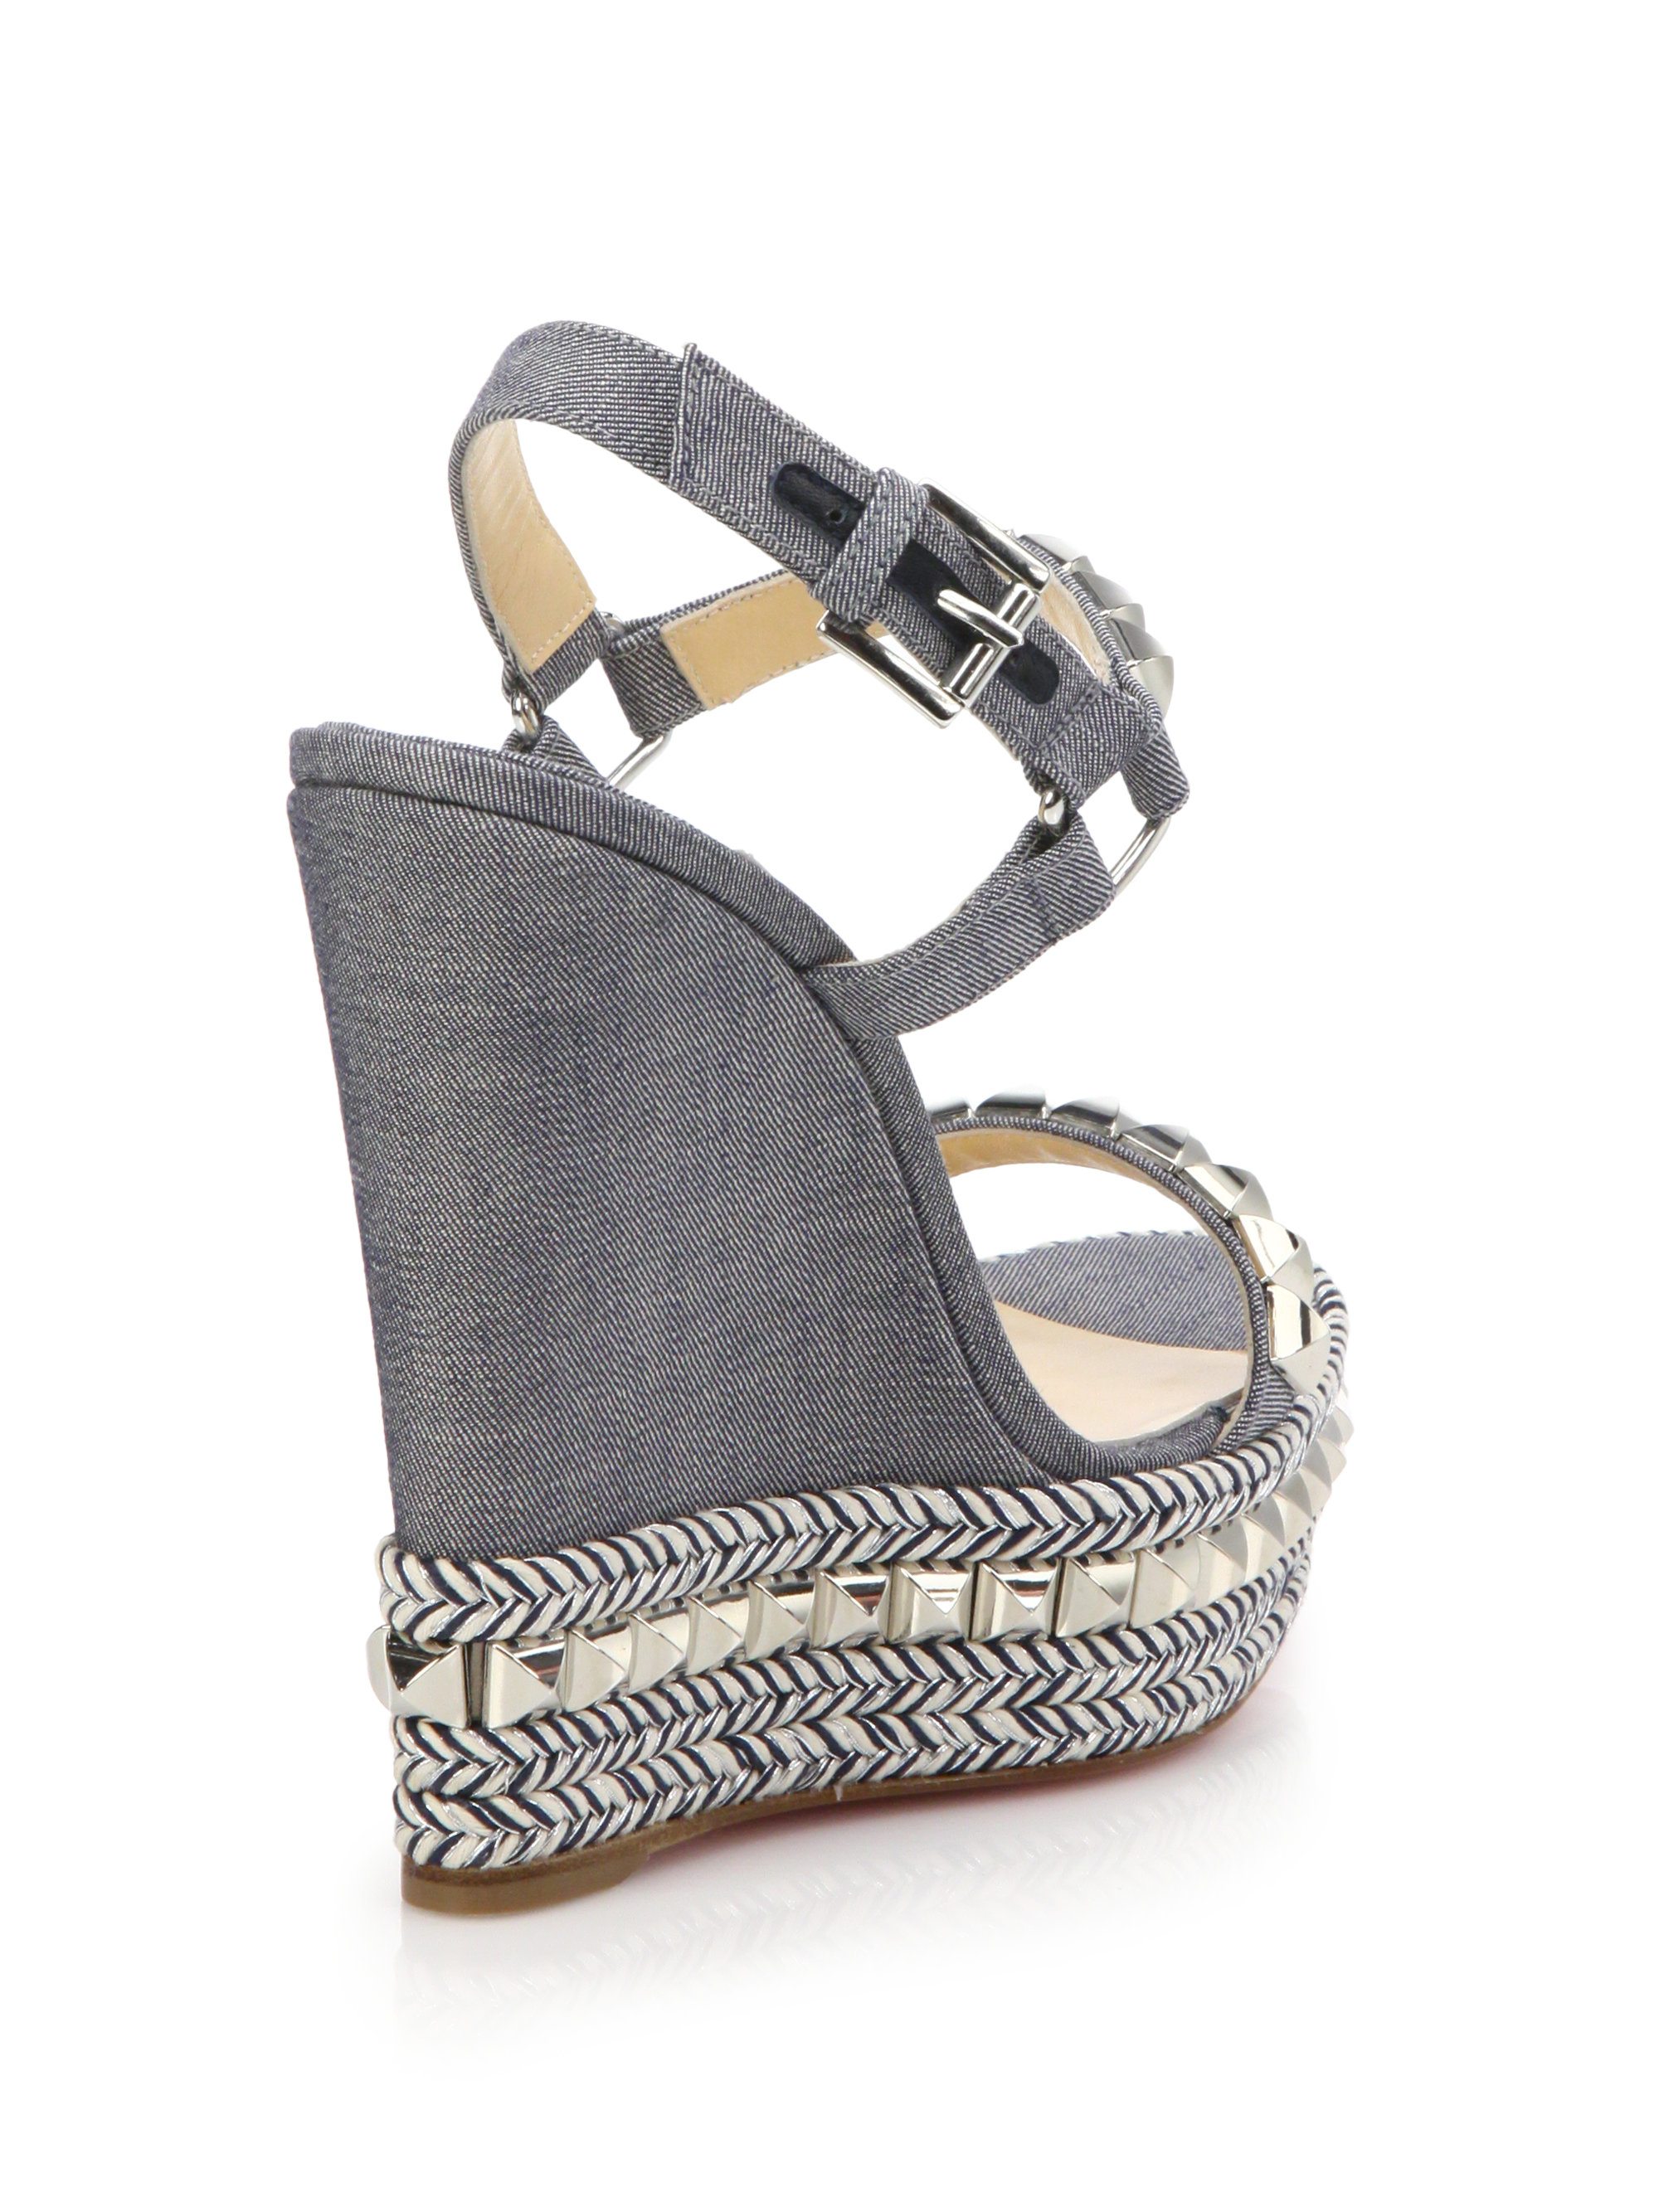 christian louboutin cataclou studded denim espadrille wedge sandals